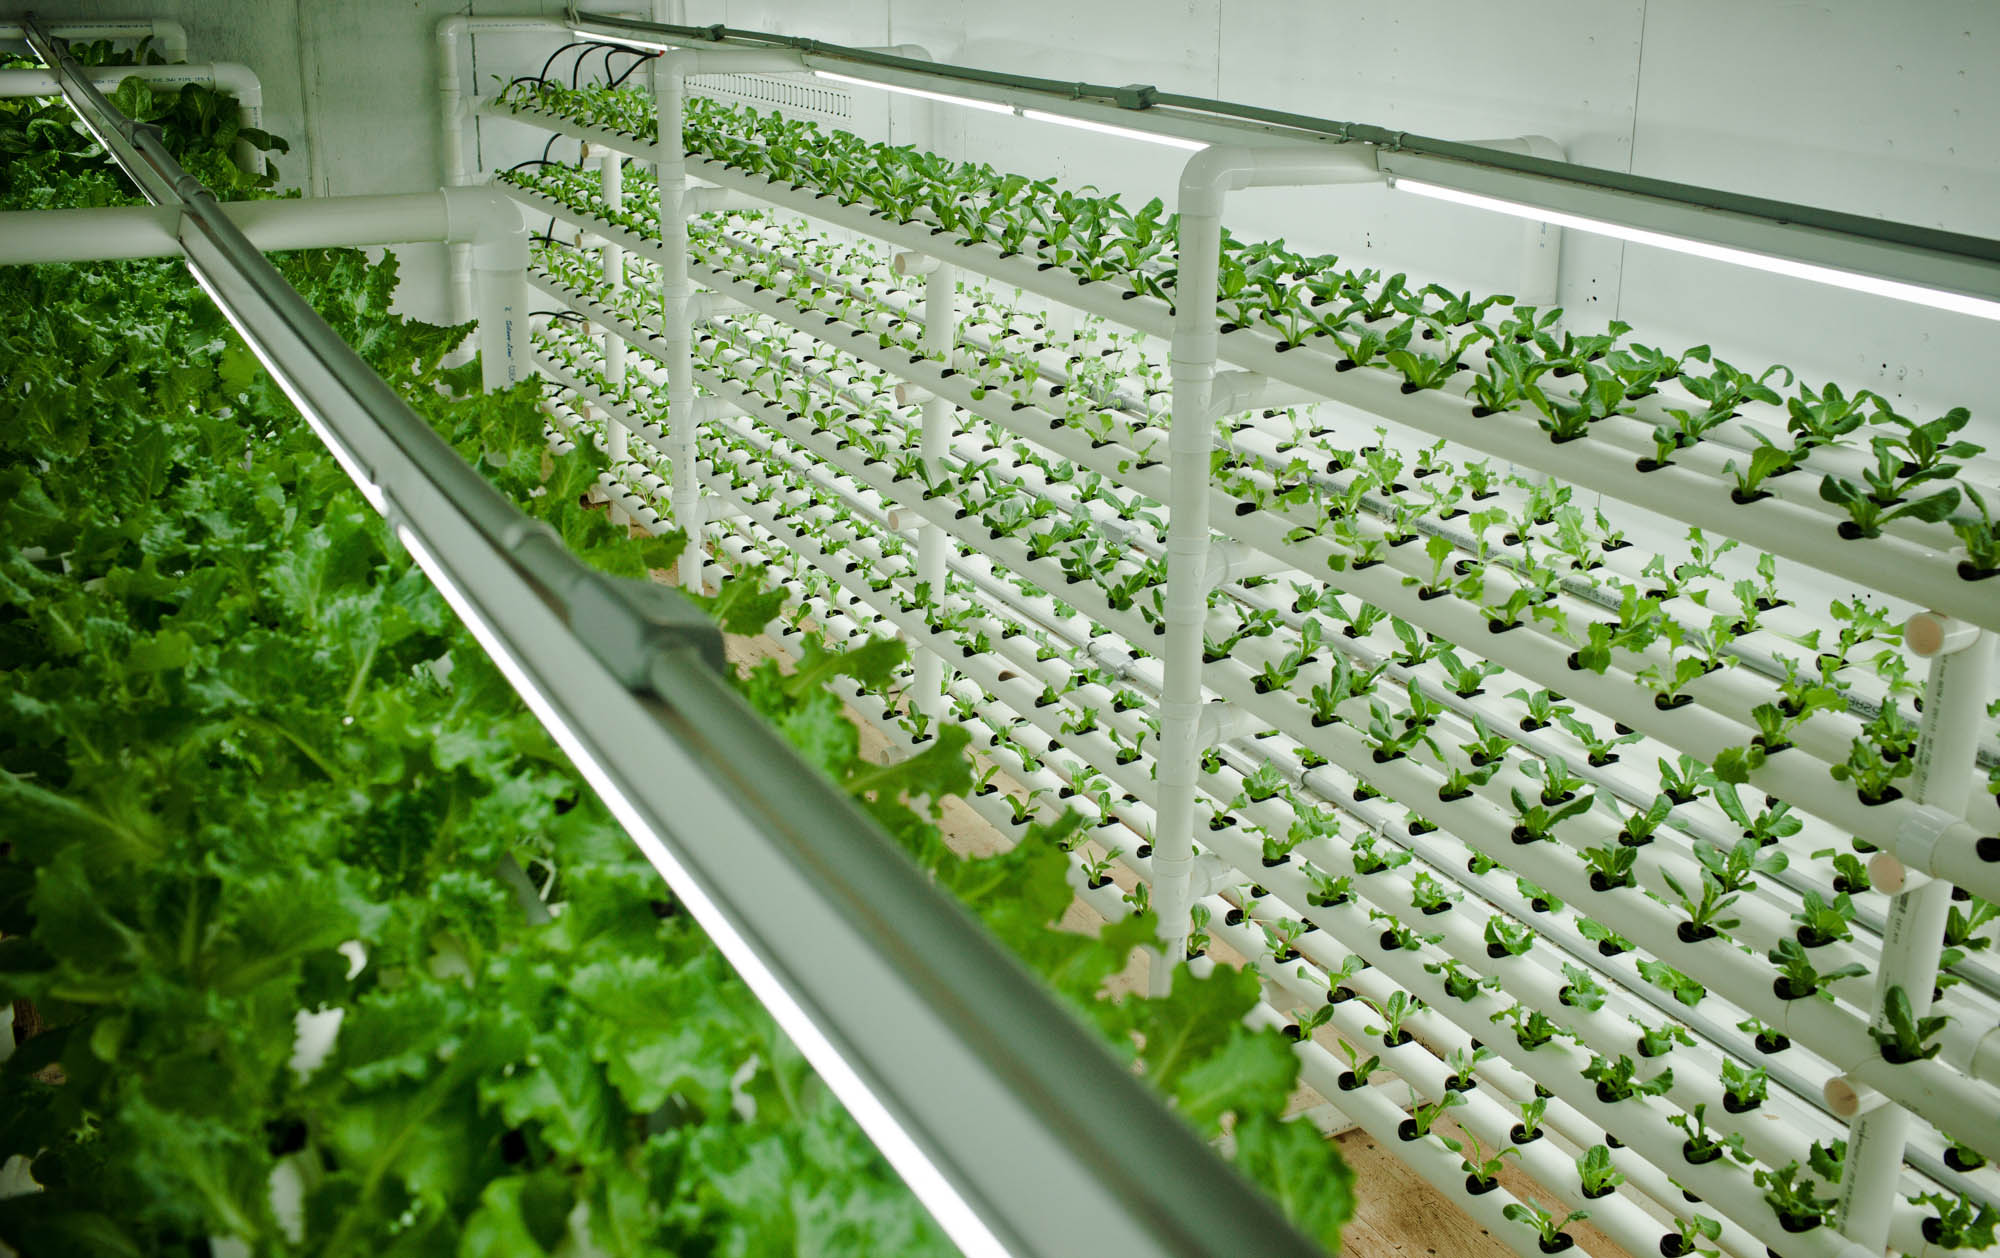 Podponics Lettuce Think Differently About Farming In Cities